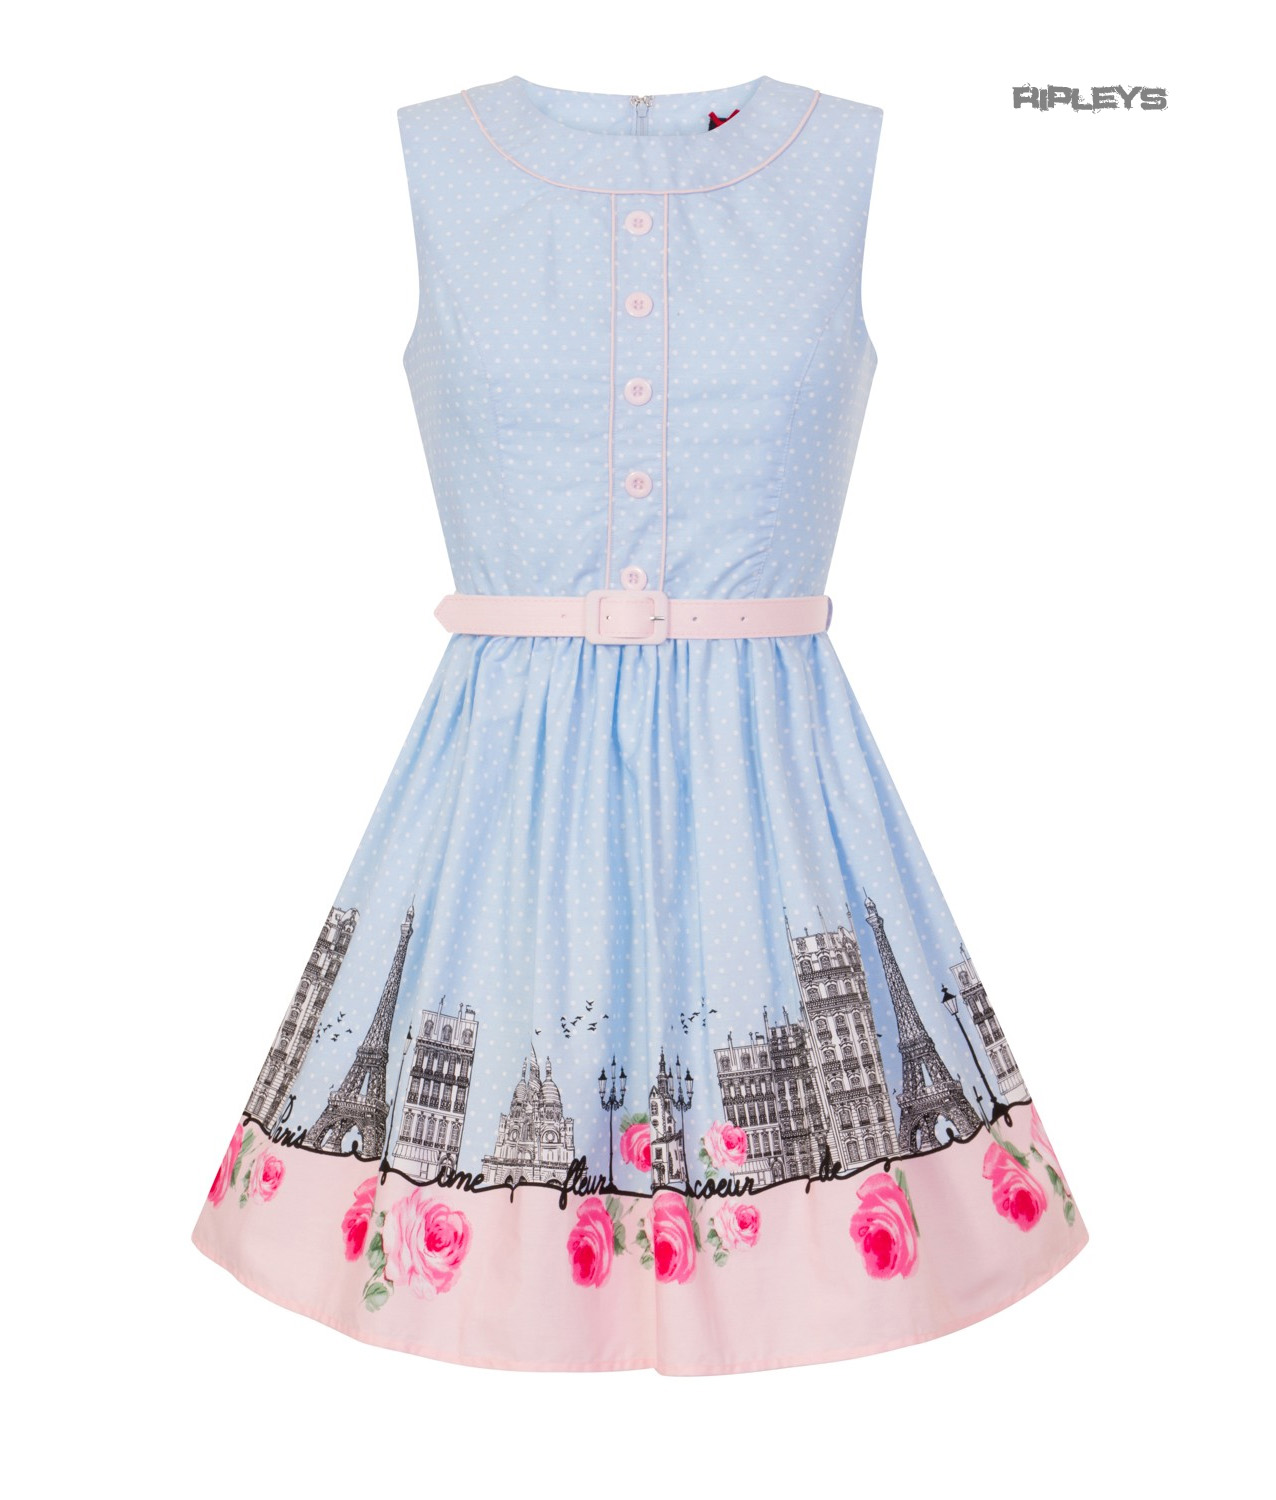 Hell-Bunny-50s-Vintage-Blue-Polka-Dot-PANAME-Mini-Dress-Paris-All-Sizes thumbnail 28